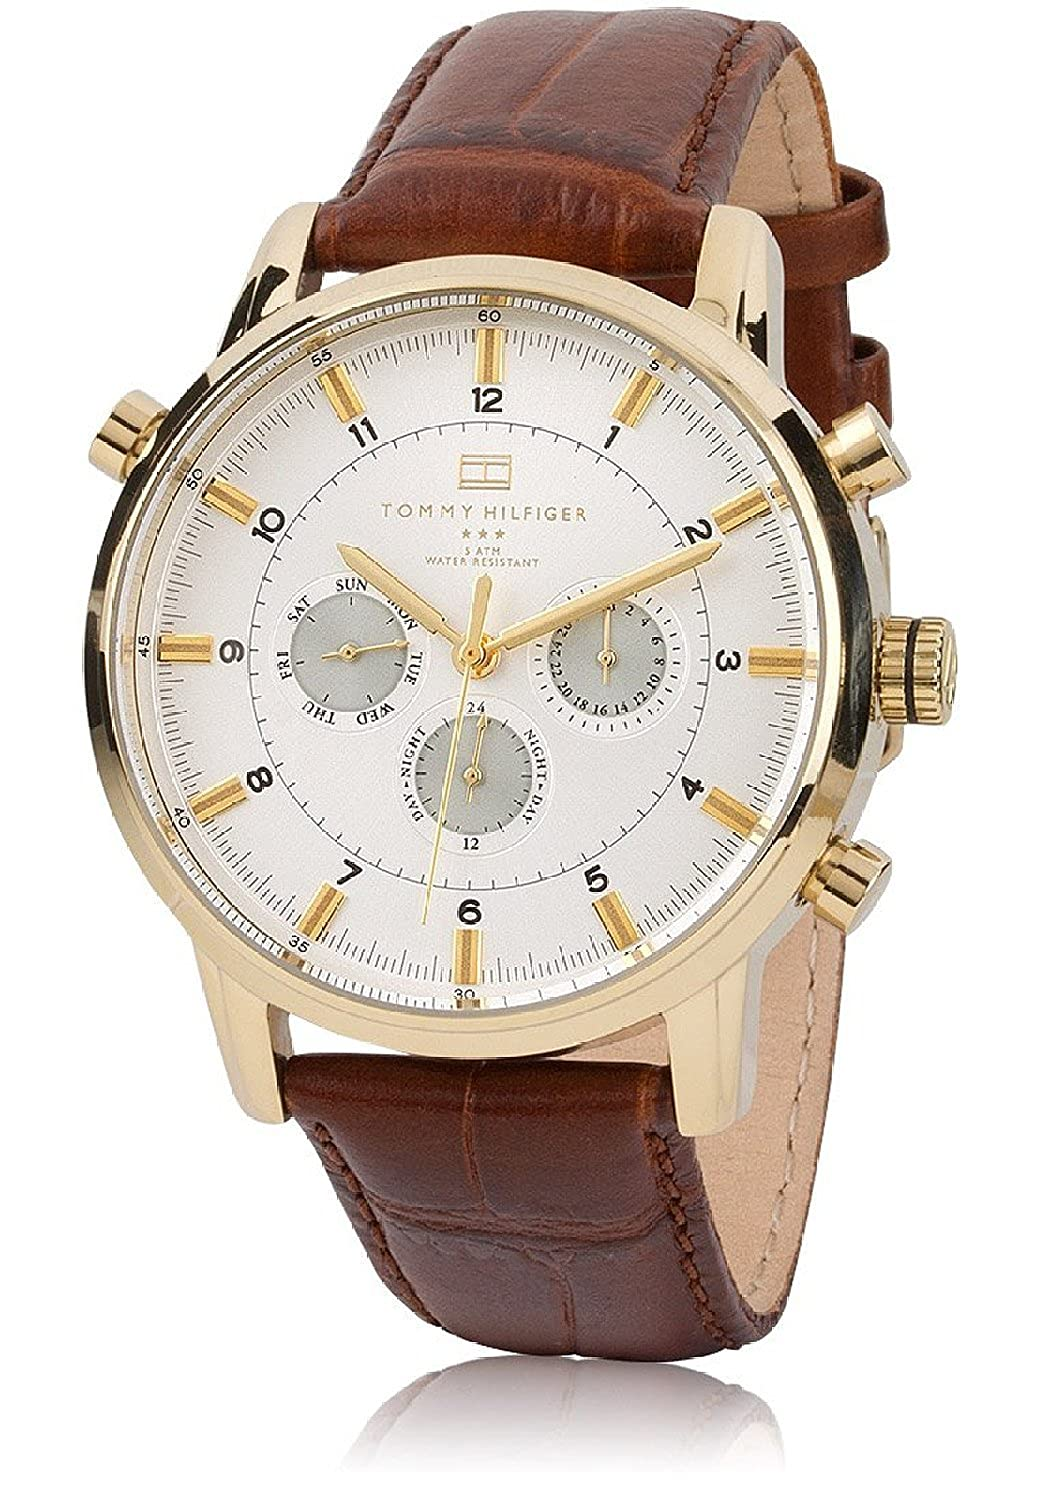 Tommy Hilfiger Th1790874j Price On 12 May 2020 Watchpriceindia